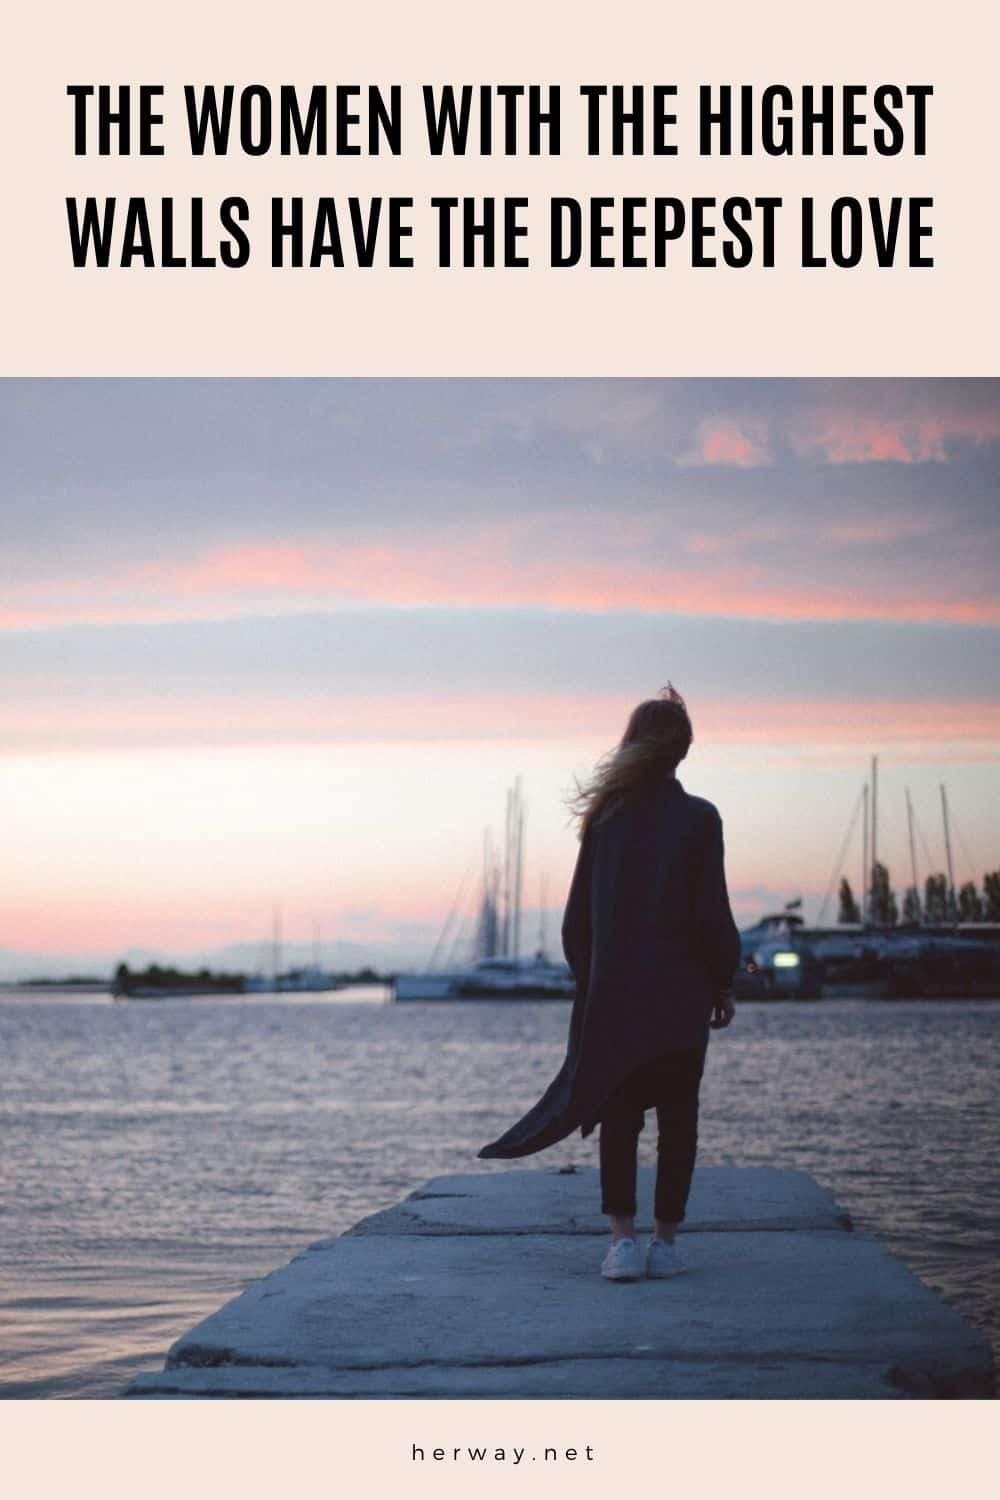 The Women With The Highest Walls Have The Deepest Love